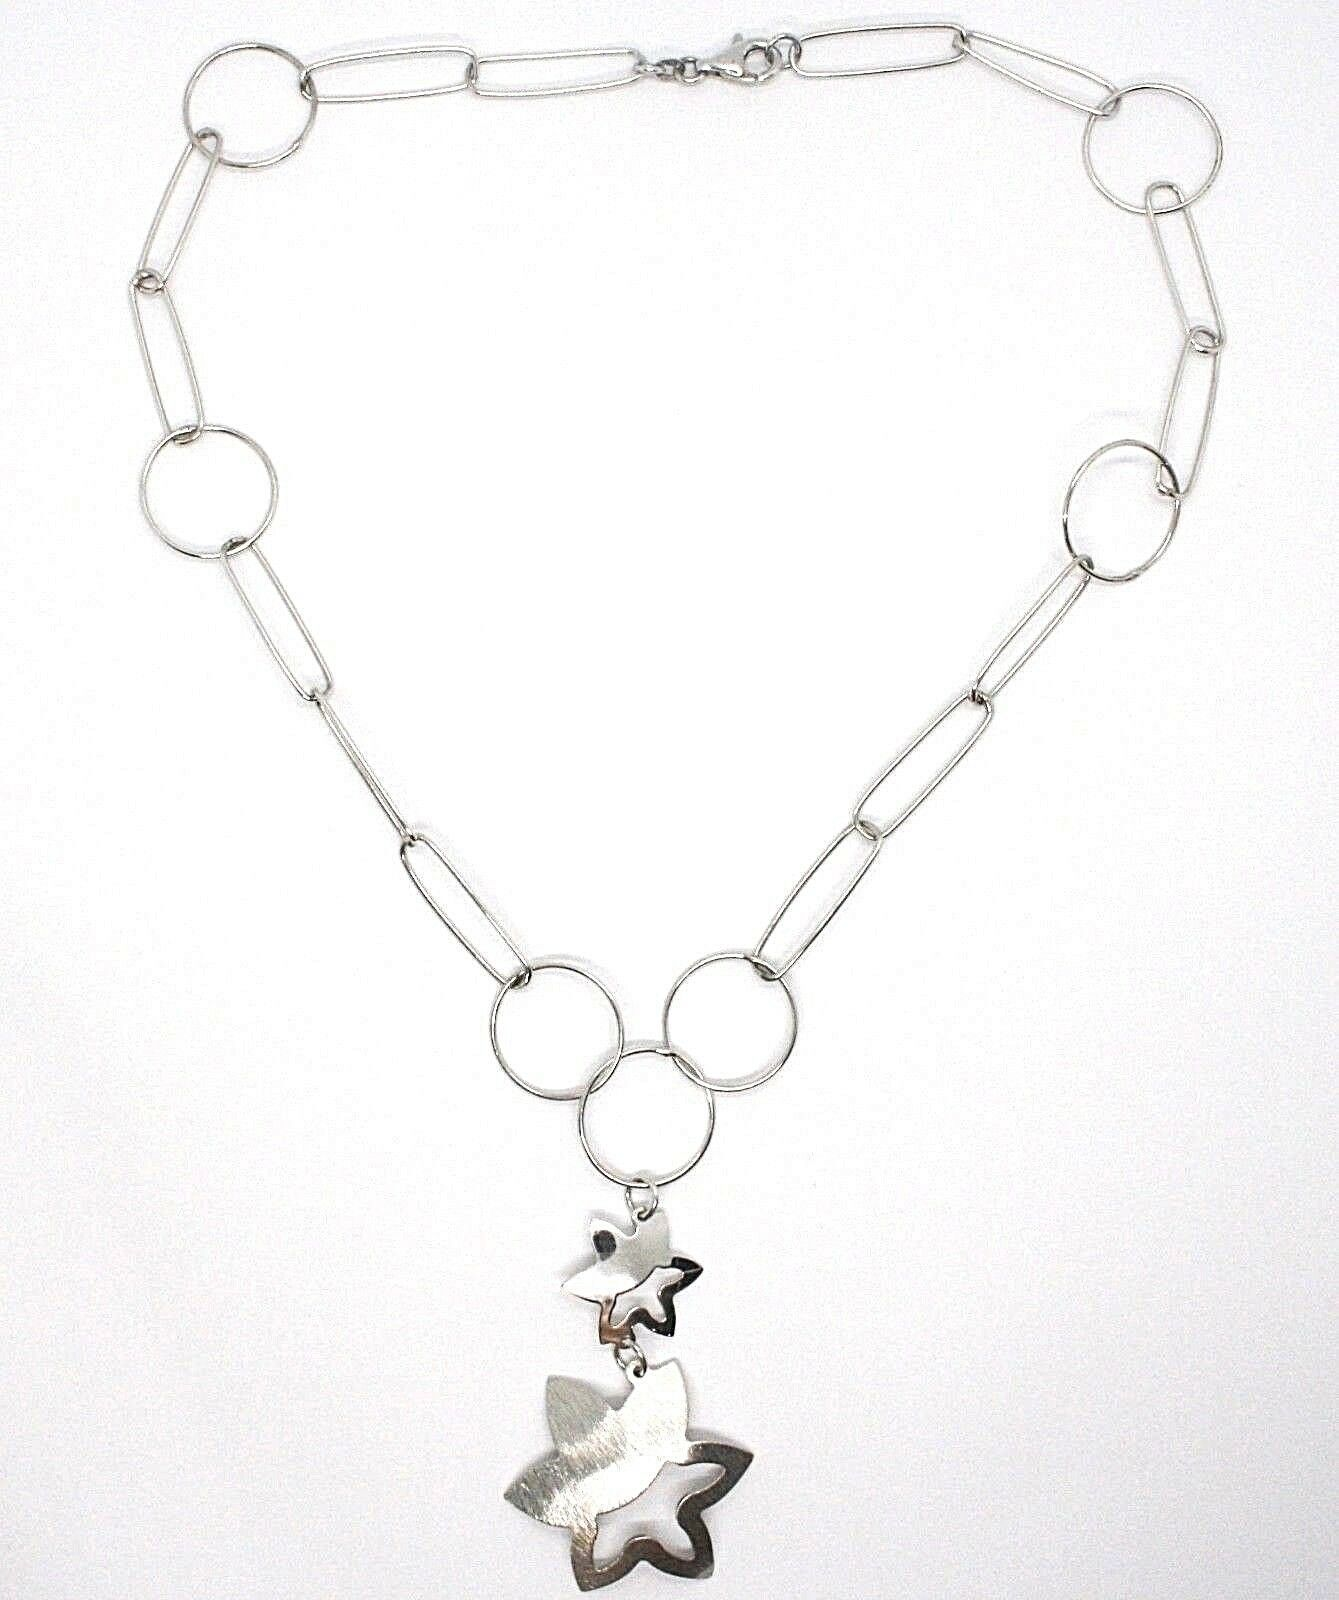 SILVER 925 NECKLACE, CHAIN CIRCLES, DOUBLE FLOWER, SUN HANGING, SATIN